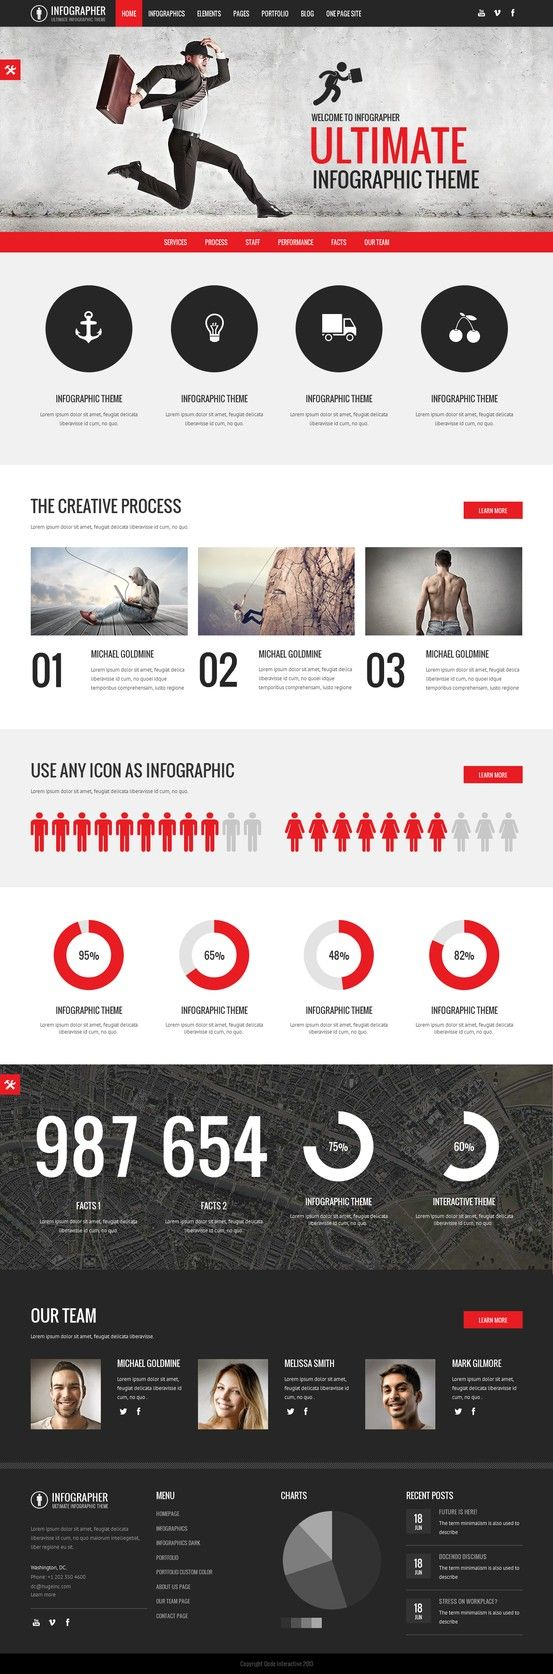 Infographer - Multi-Purpose Infographic Theme…